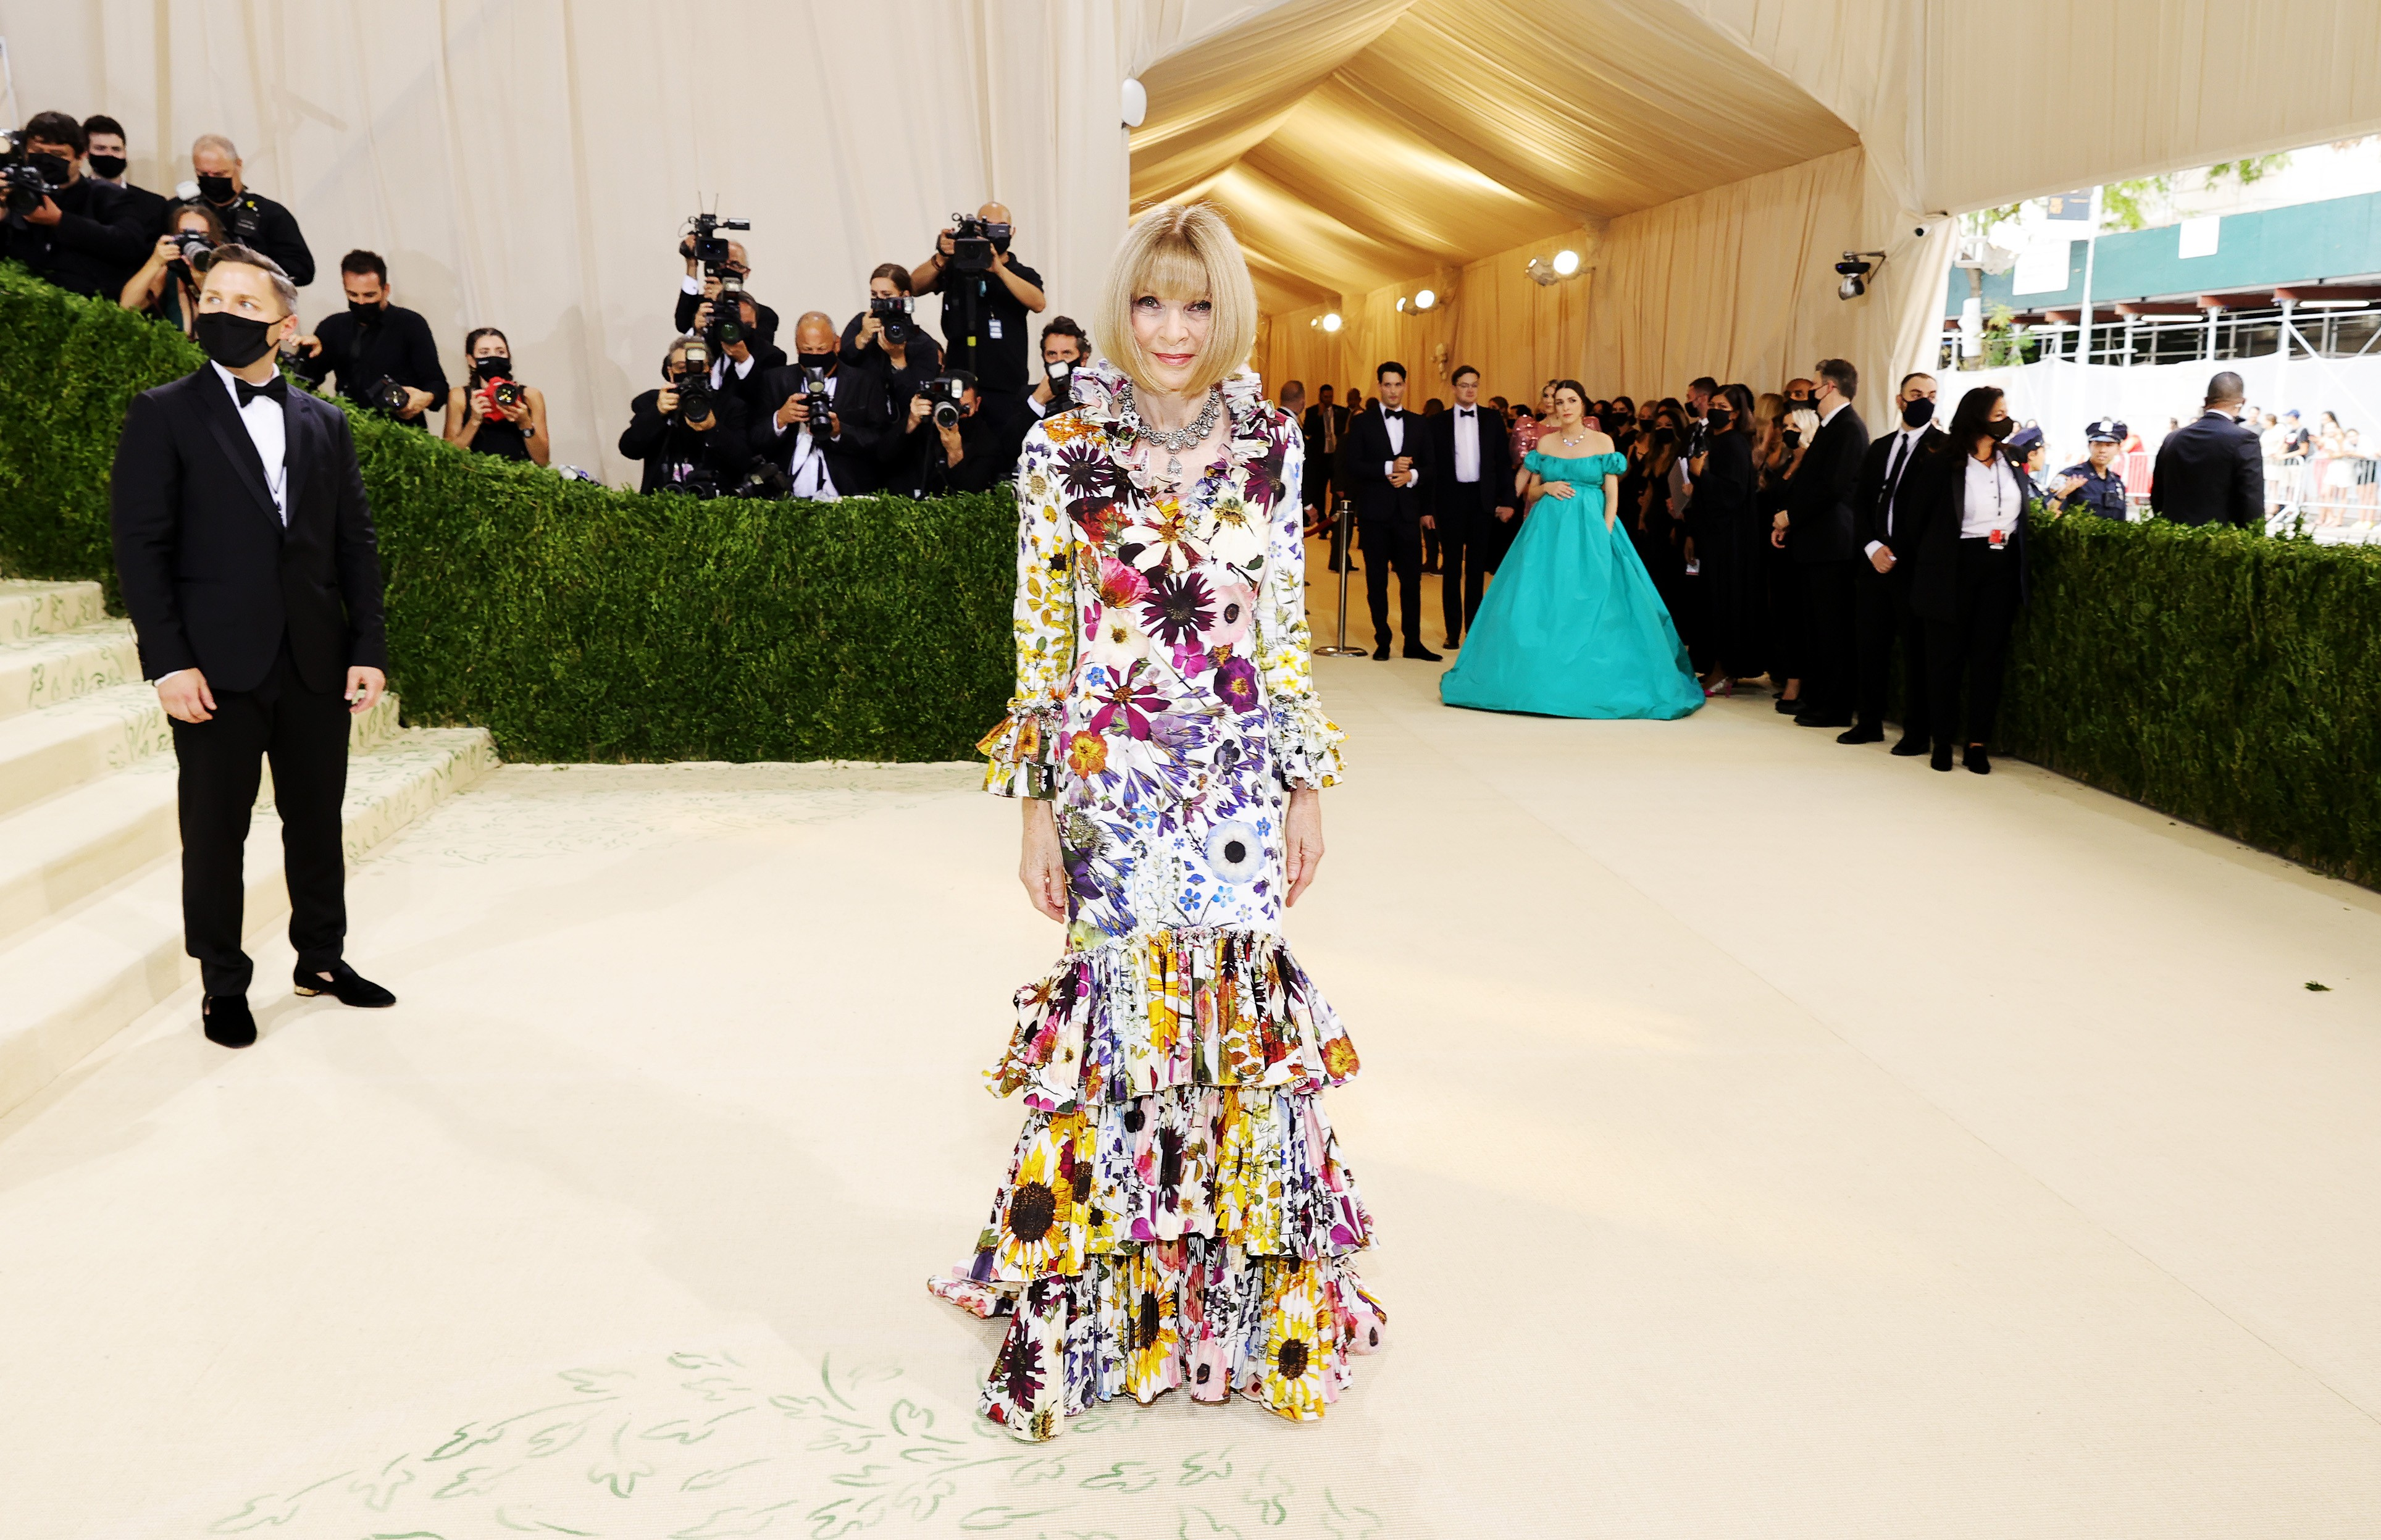 NEW YORK, NEW YORK - SEPTEMBER 13: Anna Wintour attends The 2021 Met Gala Celebrating In America: A Lexicon Of Fashion at Metropolitan Museum of Art on September 13, 2021 in New York City. (Photo by Mike Coppola/Getty Images) (Foto: Getty Images)